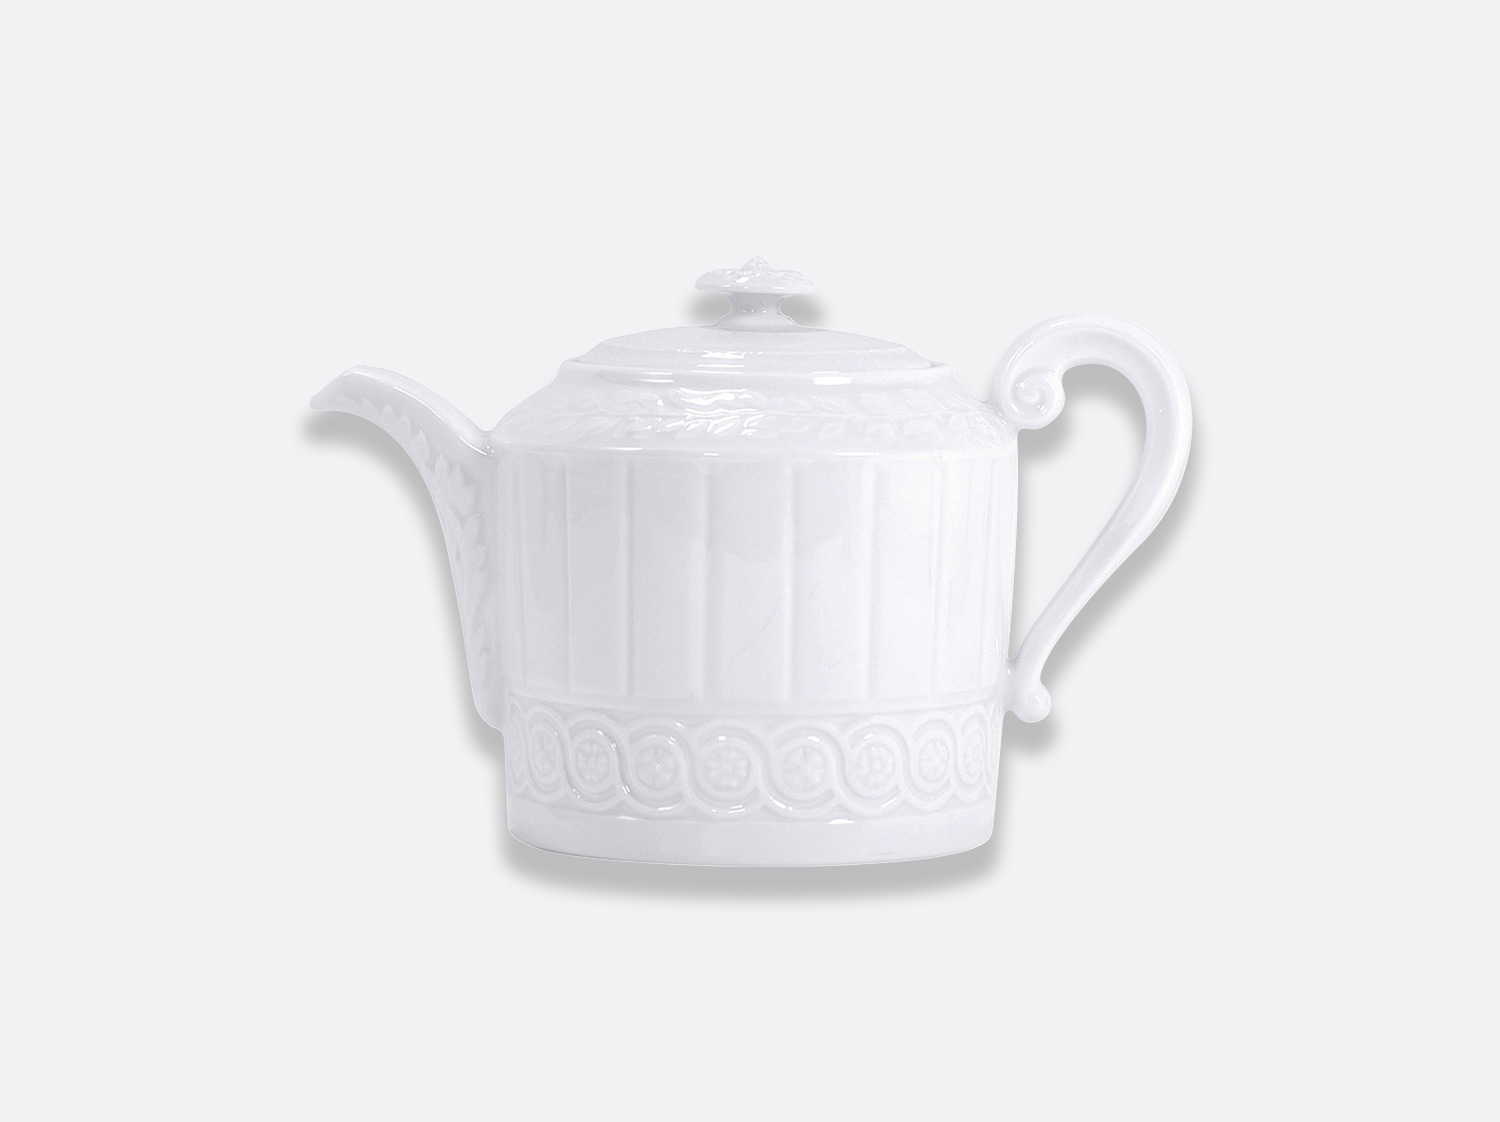 Théière 12 tasses 1 L en porcelaine de la collection Louvre Bernardaud